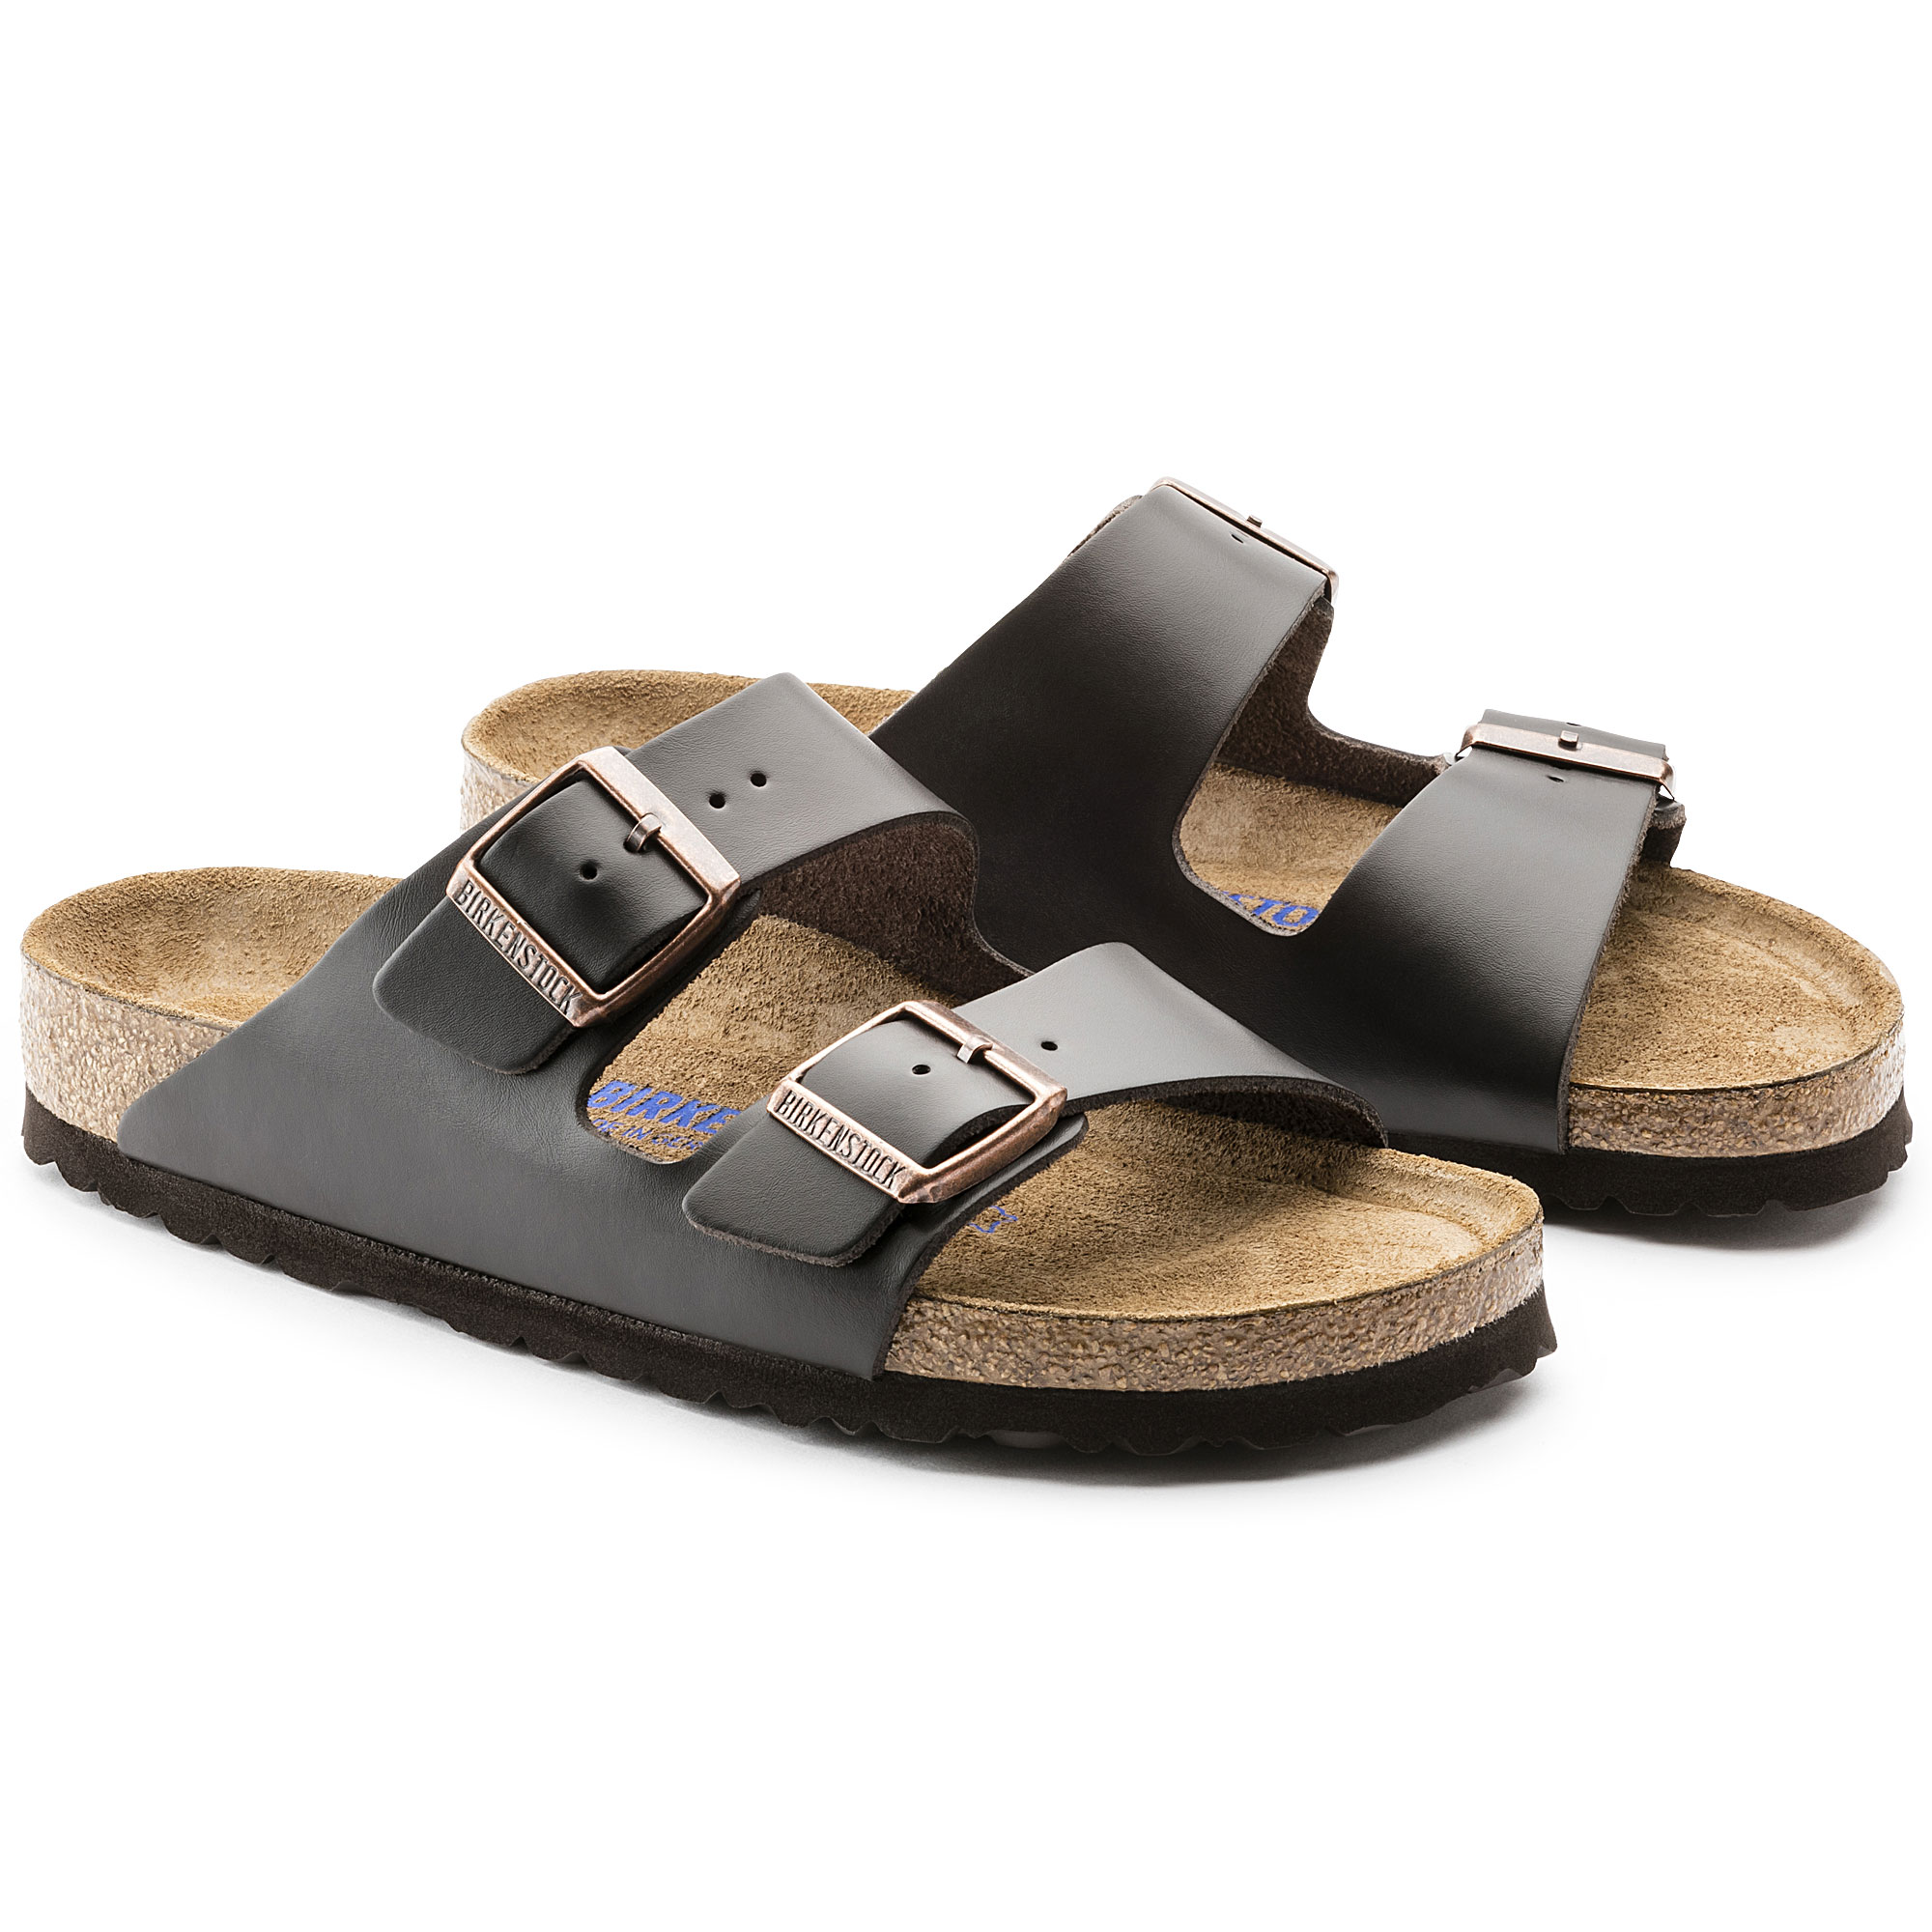 first look buying cheap popular brand Arizona Natural Leather Brown | shop online at BIRKENSTOCK